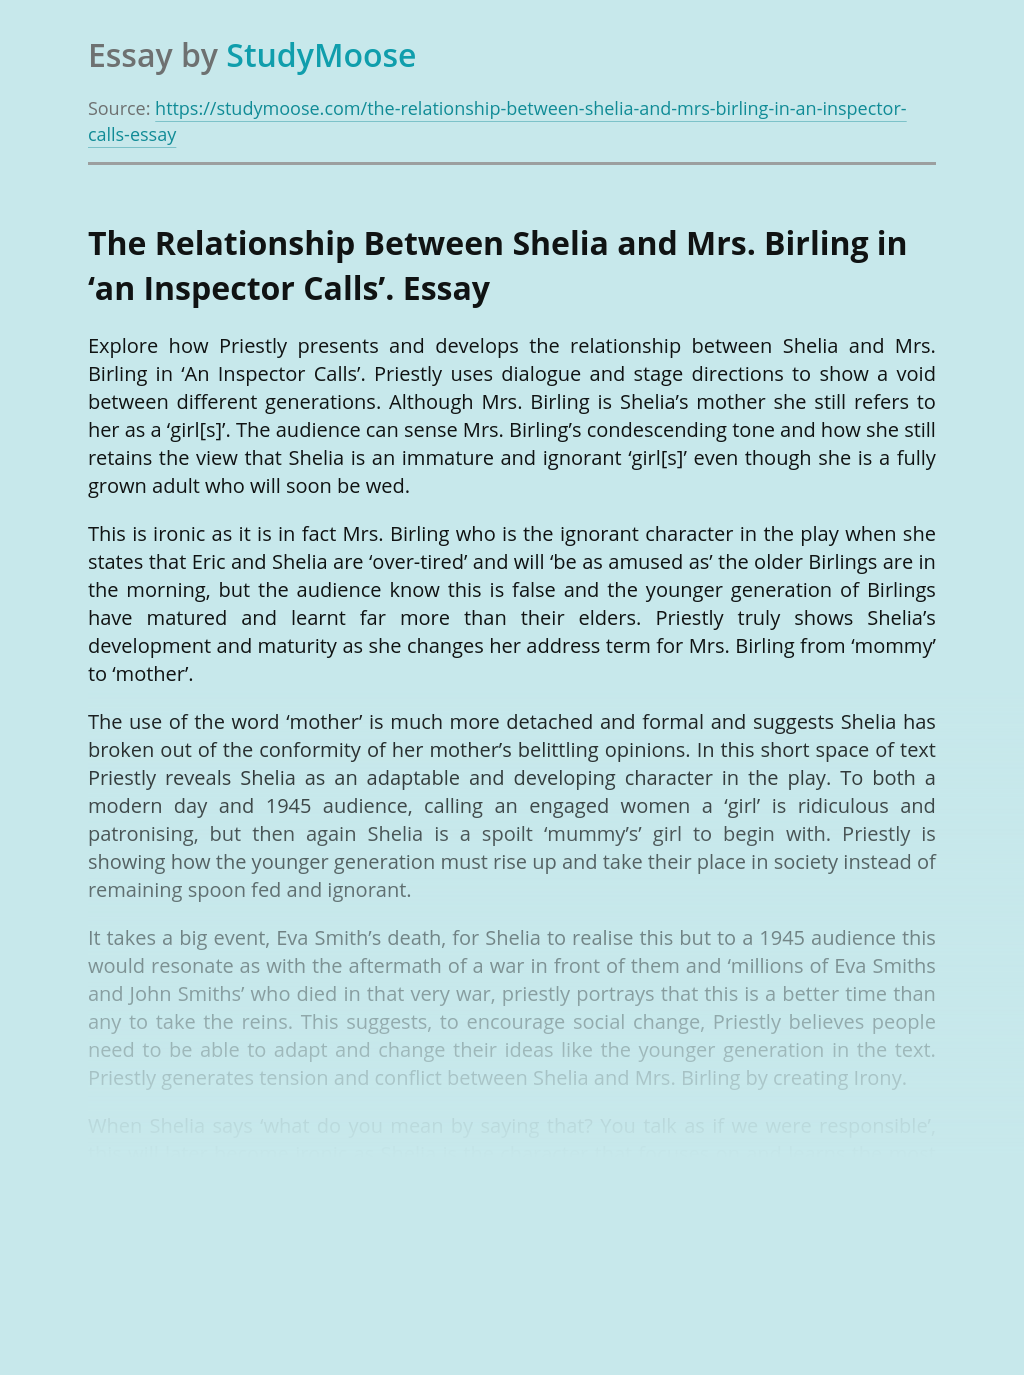 The Relationship Between Shelia and Mrs. Birling in 'an Inspector Calls'.